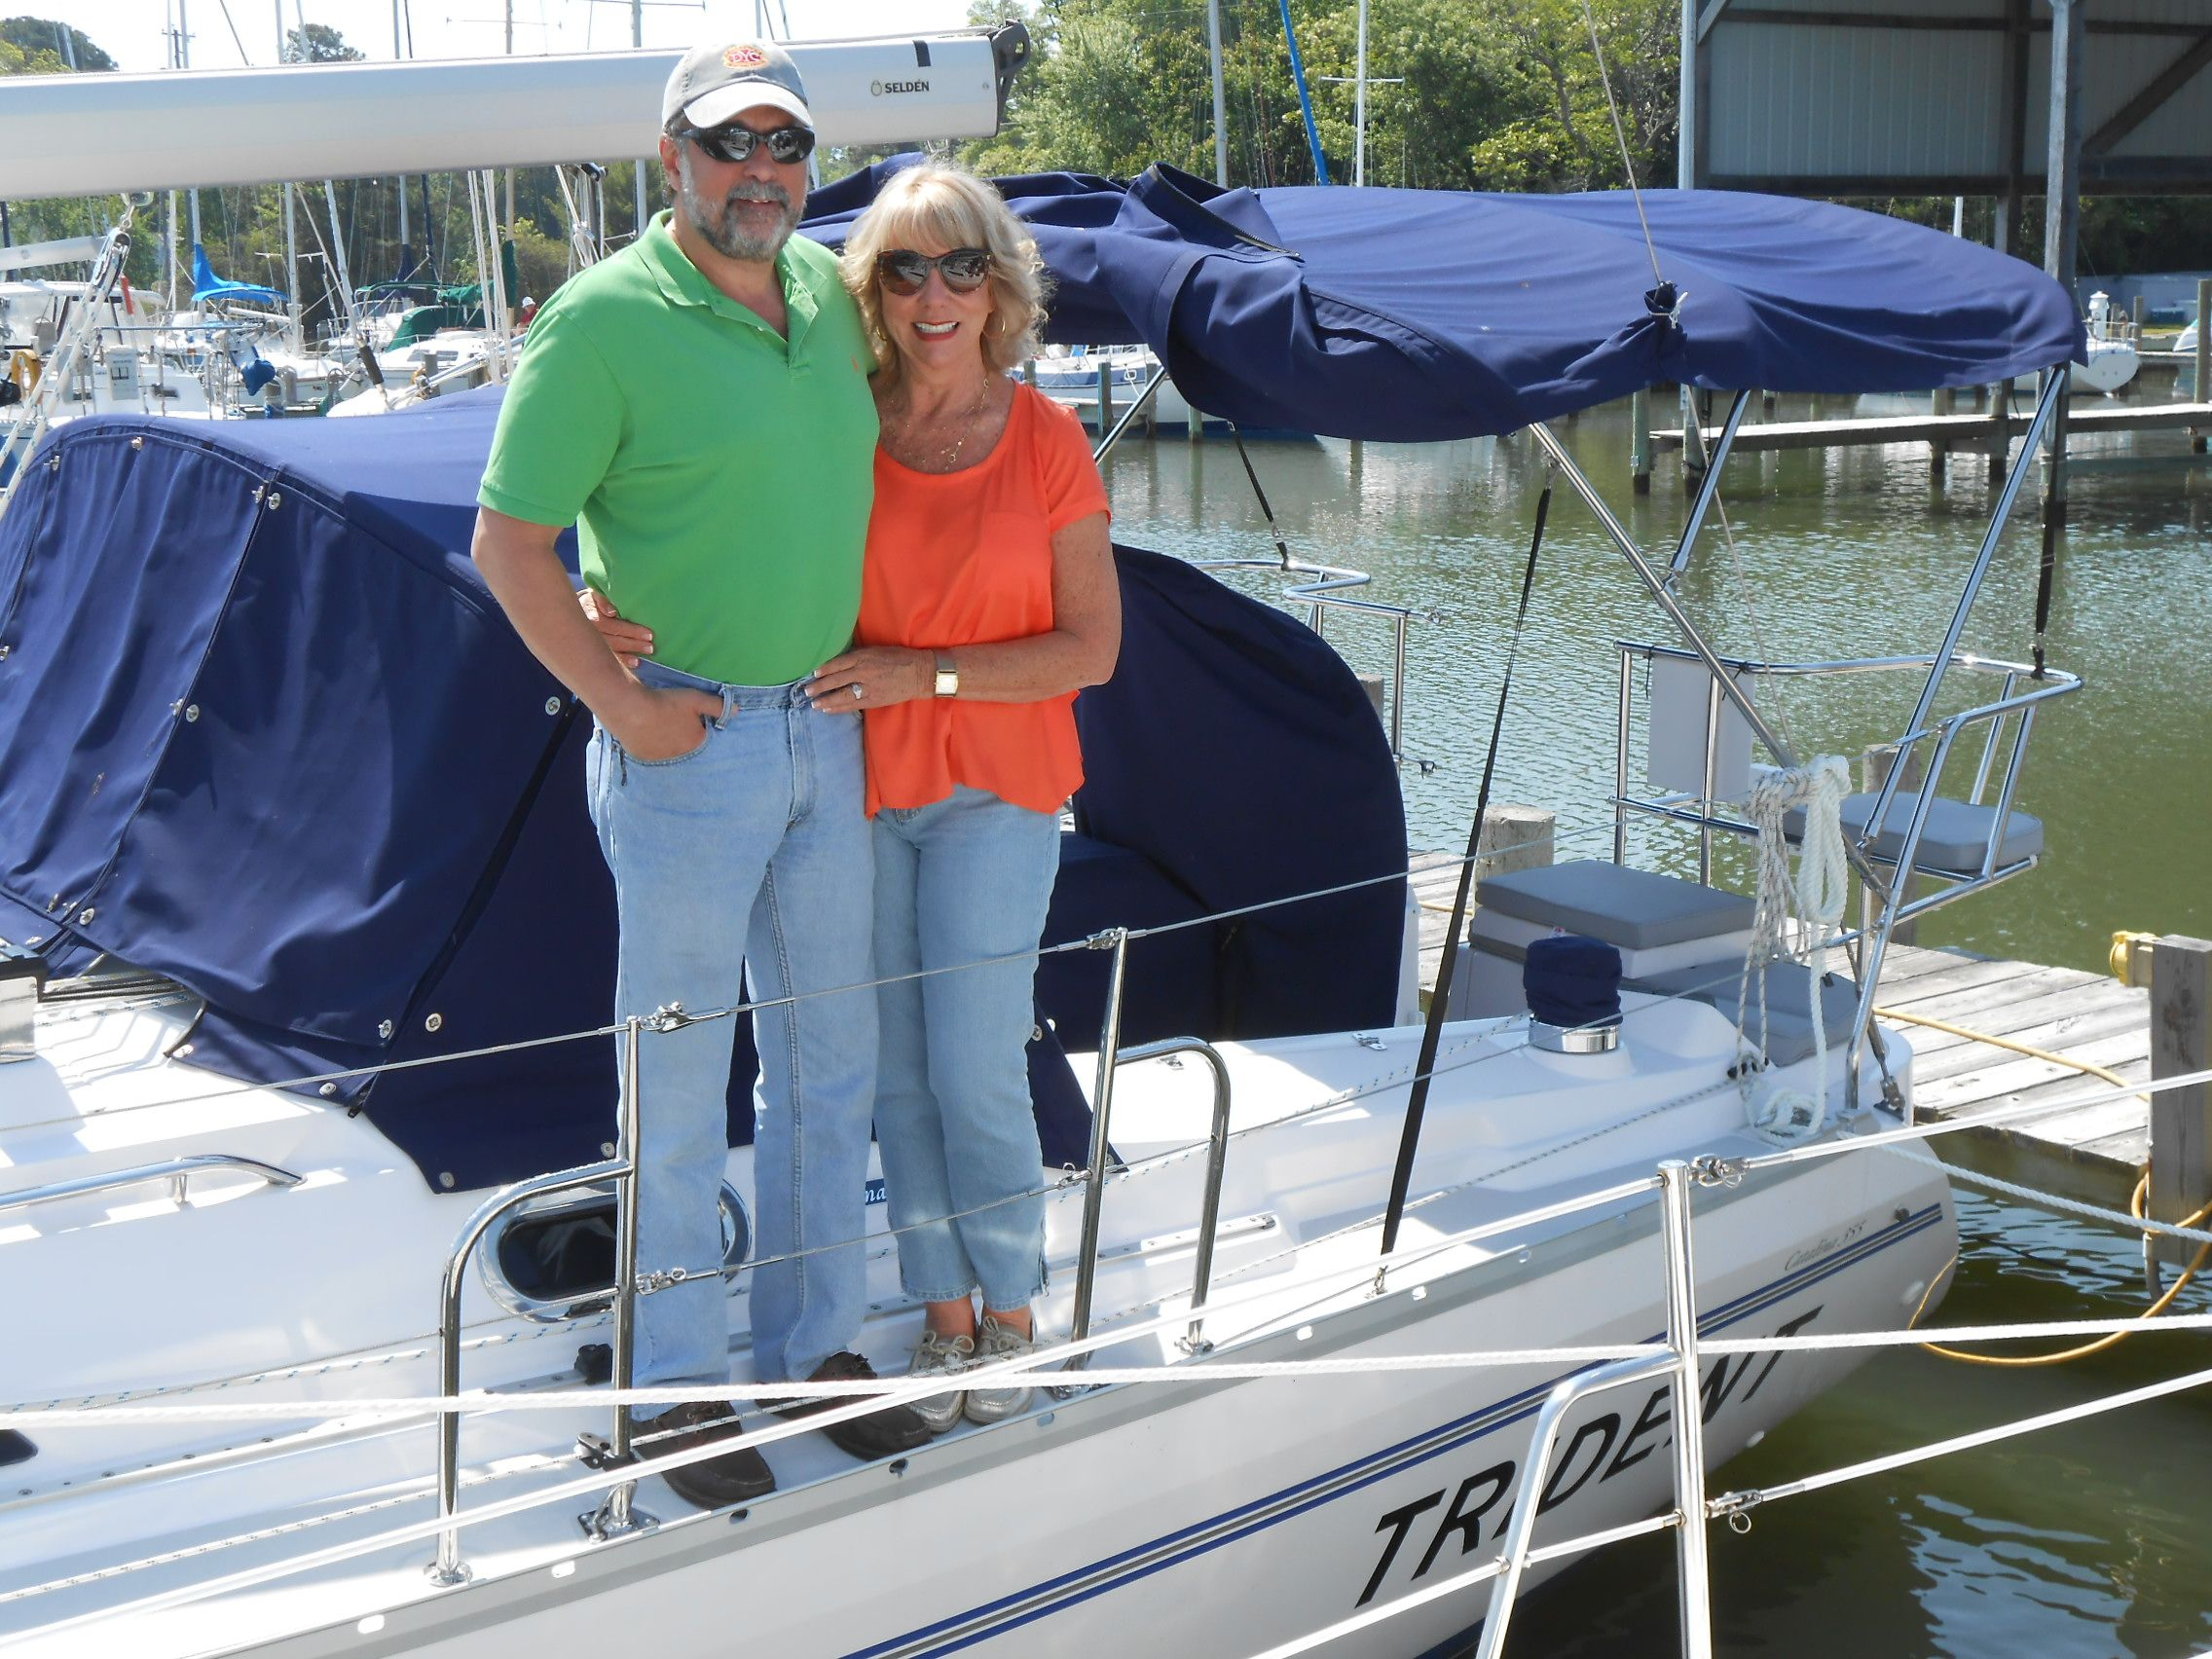 Pam and John A  are the proud new owners of